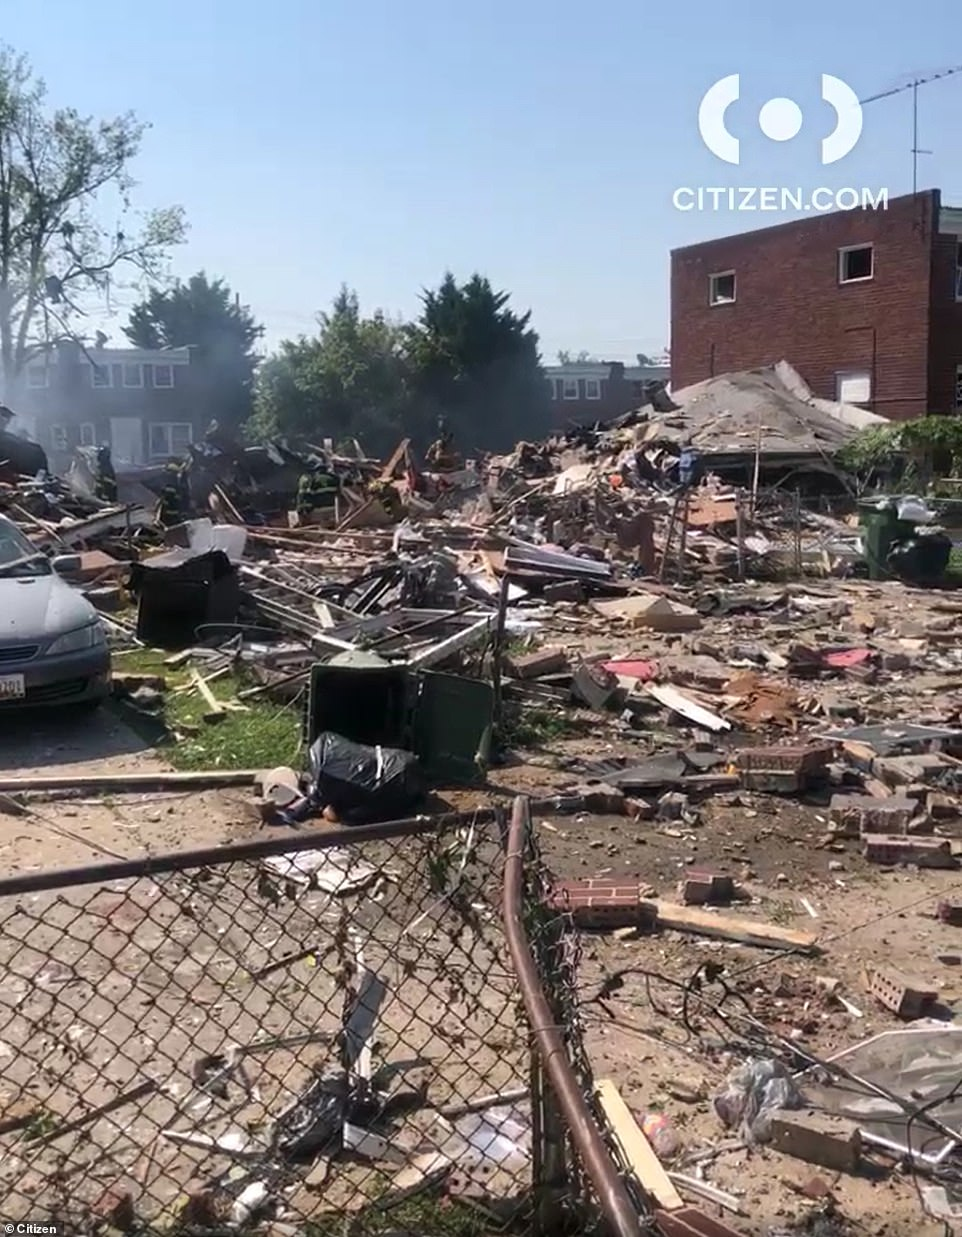 Horrifying images on social media show homes destroyed and reduced to rubble in the area